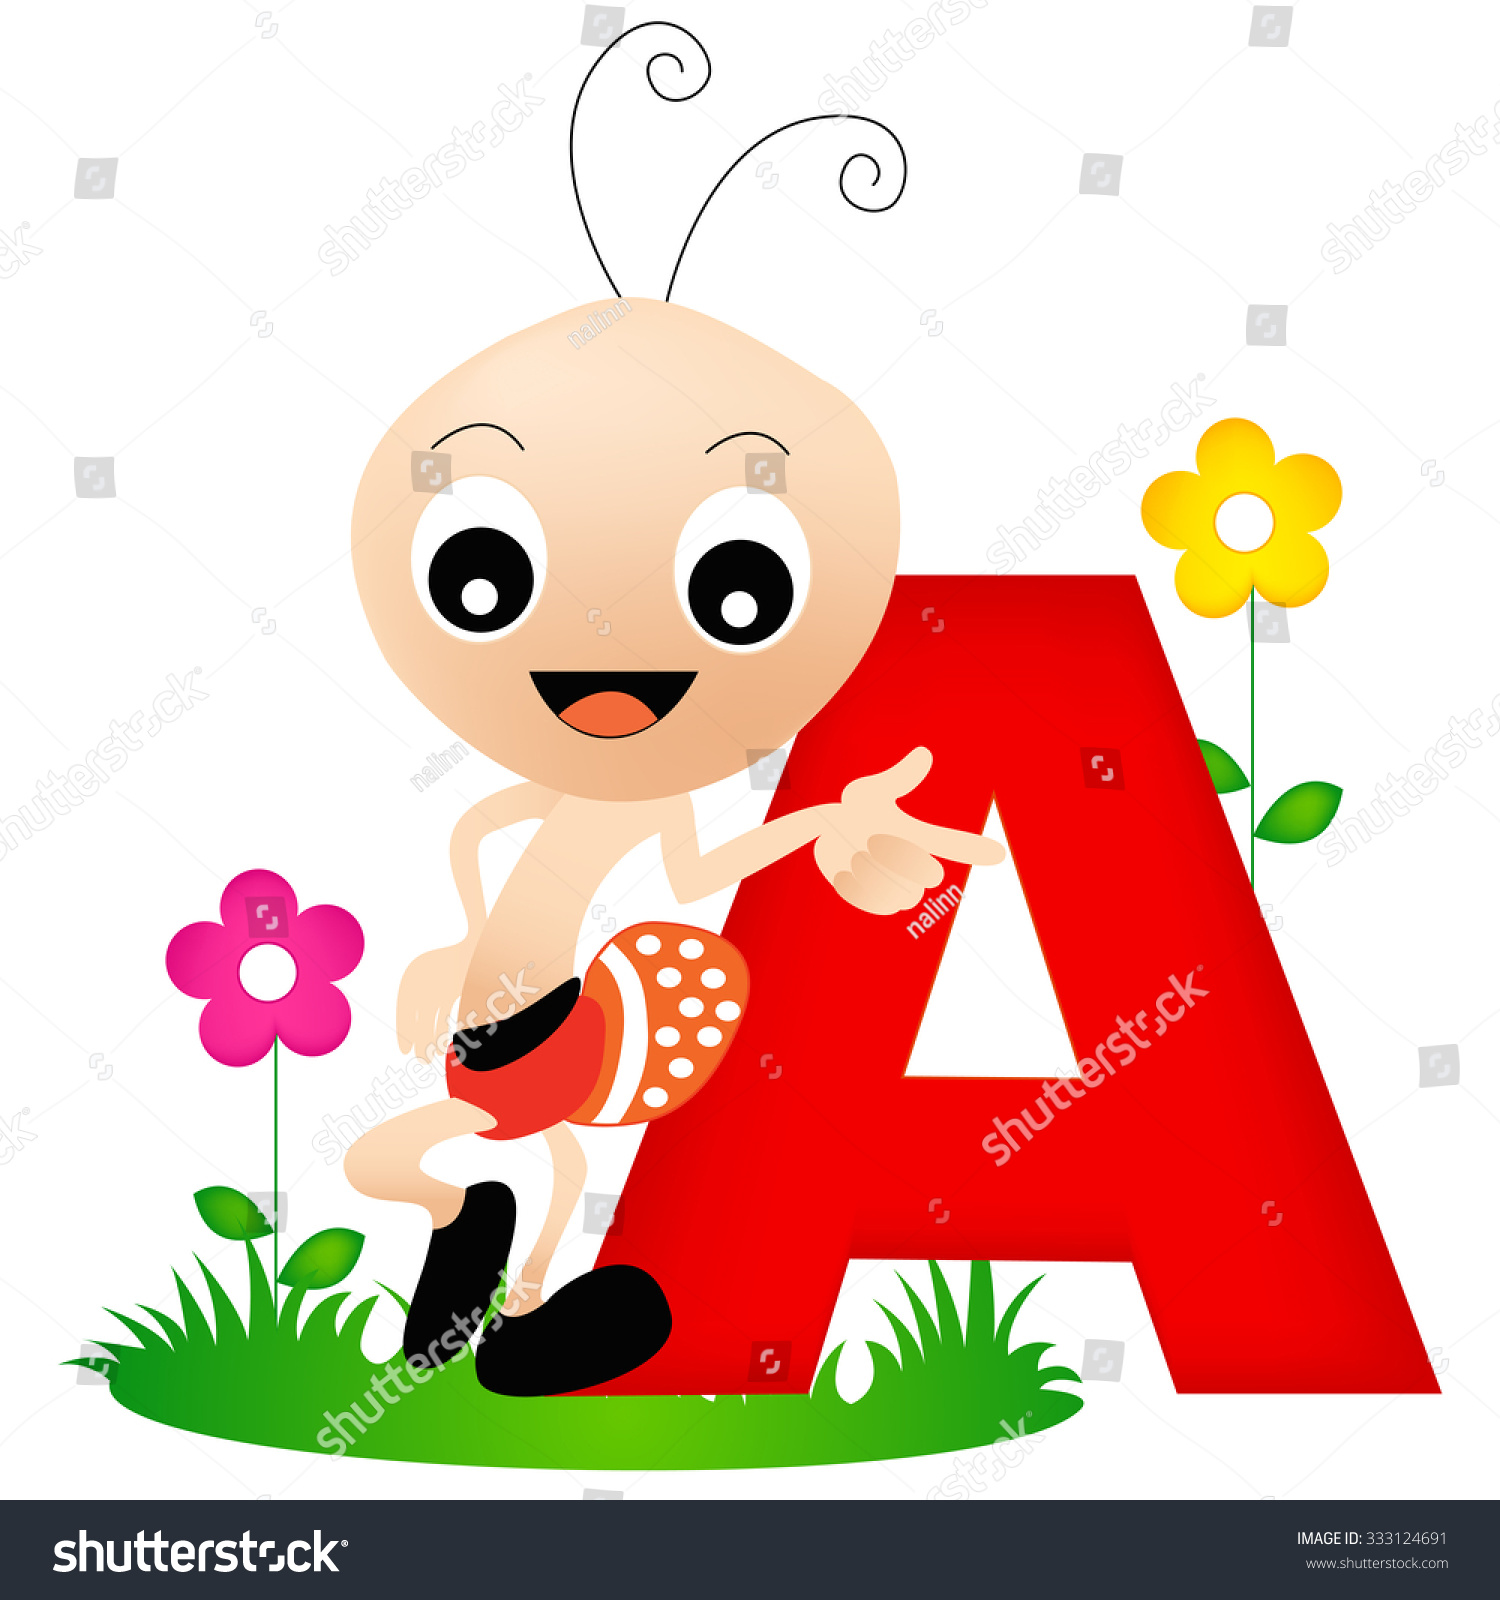 Cartoon Characters Letter Z : Colorful animal alphabet letter cute ant stock